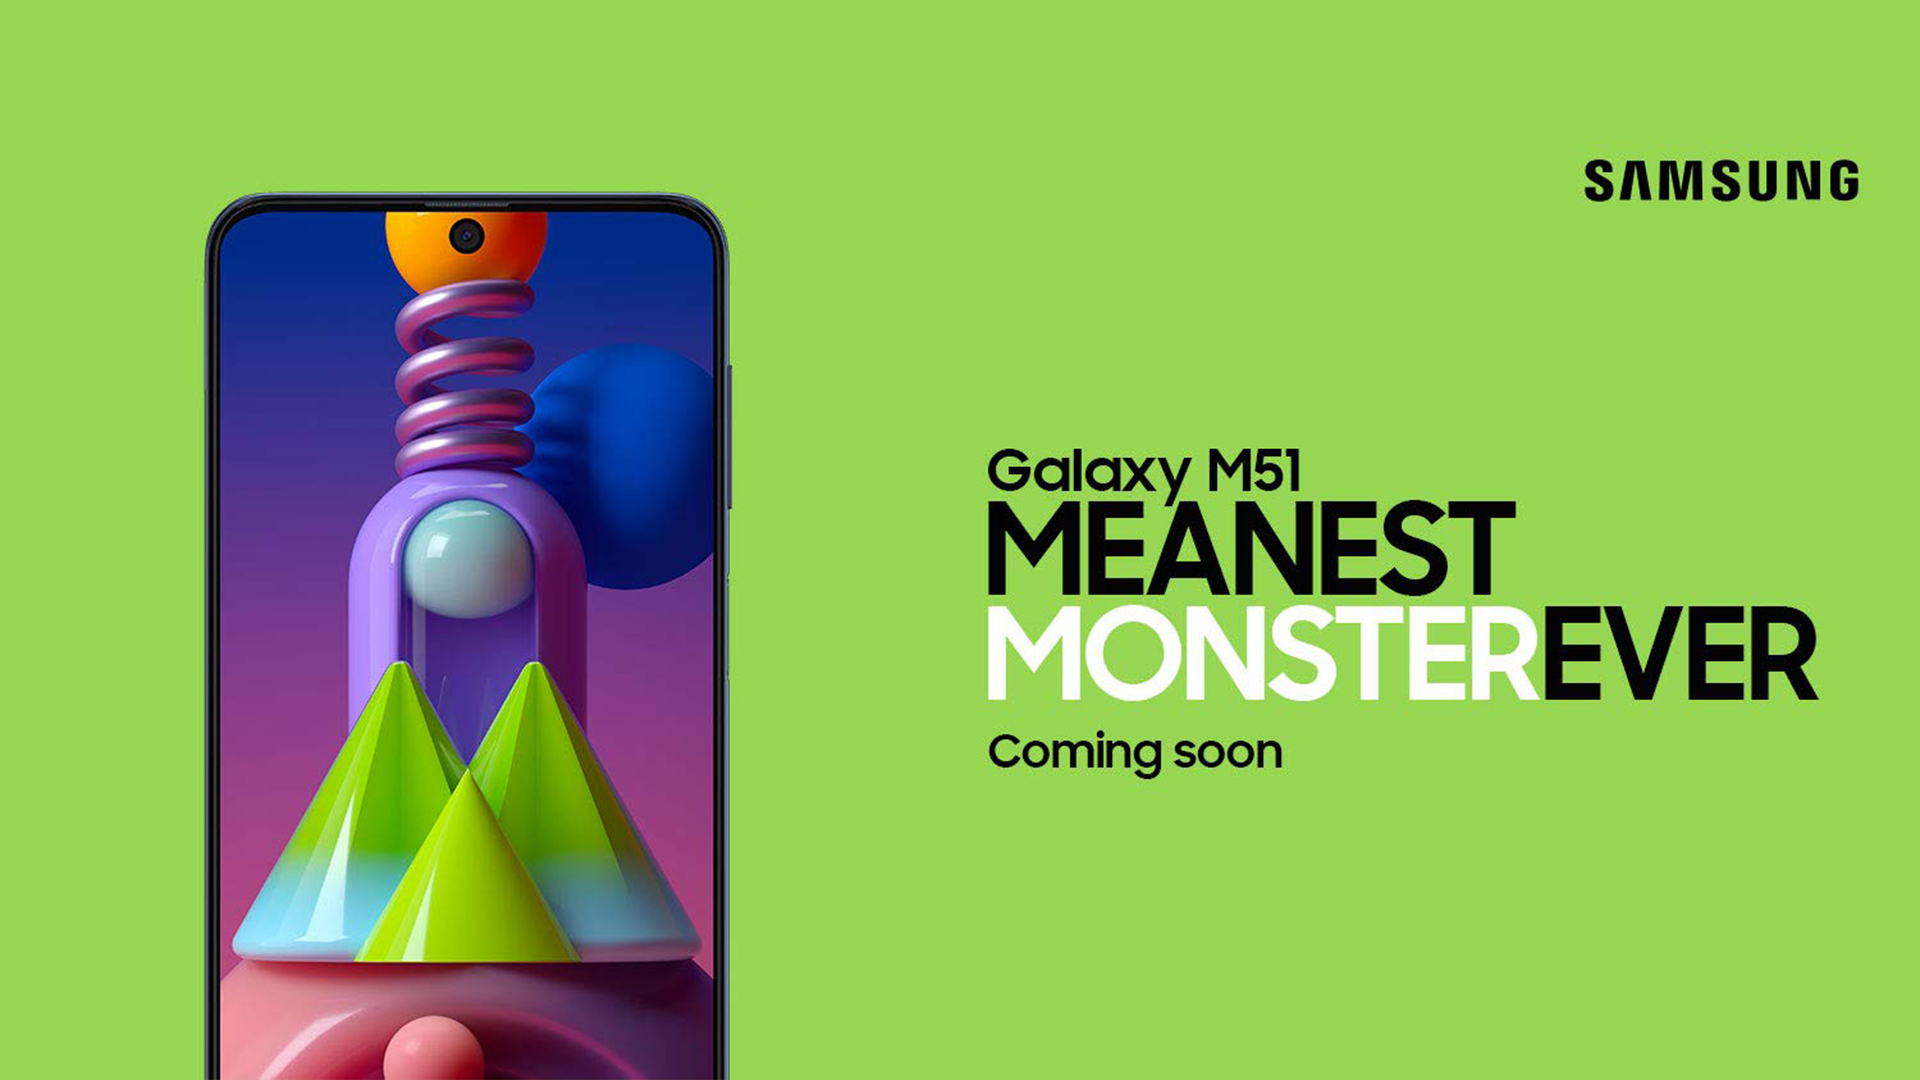 Samsung Officially Teases Galaxy M51 Live Images And Specs Revealed Sammobile